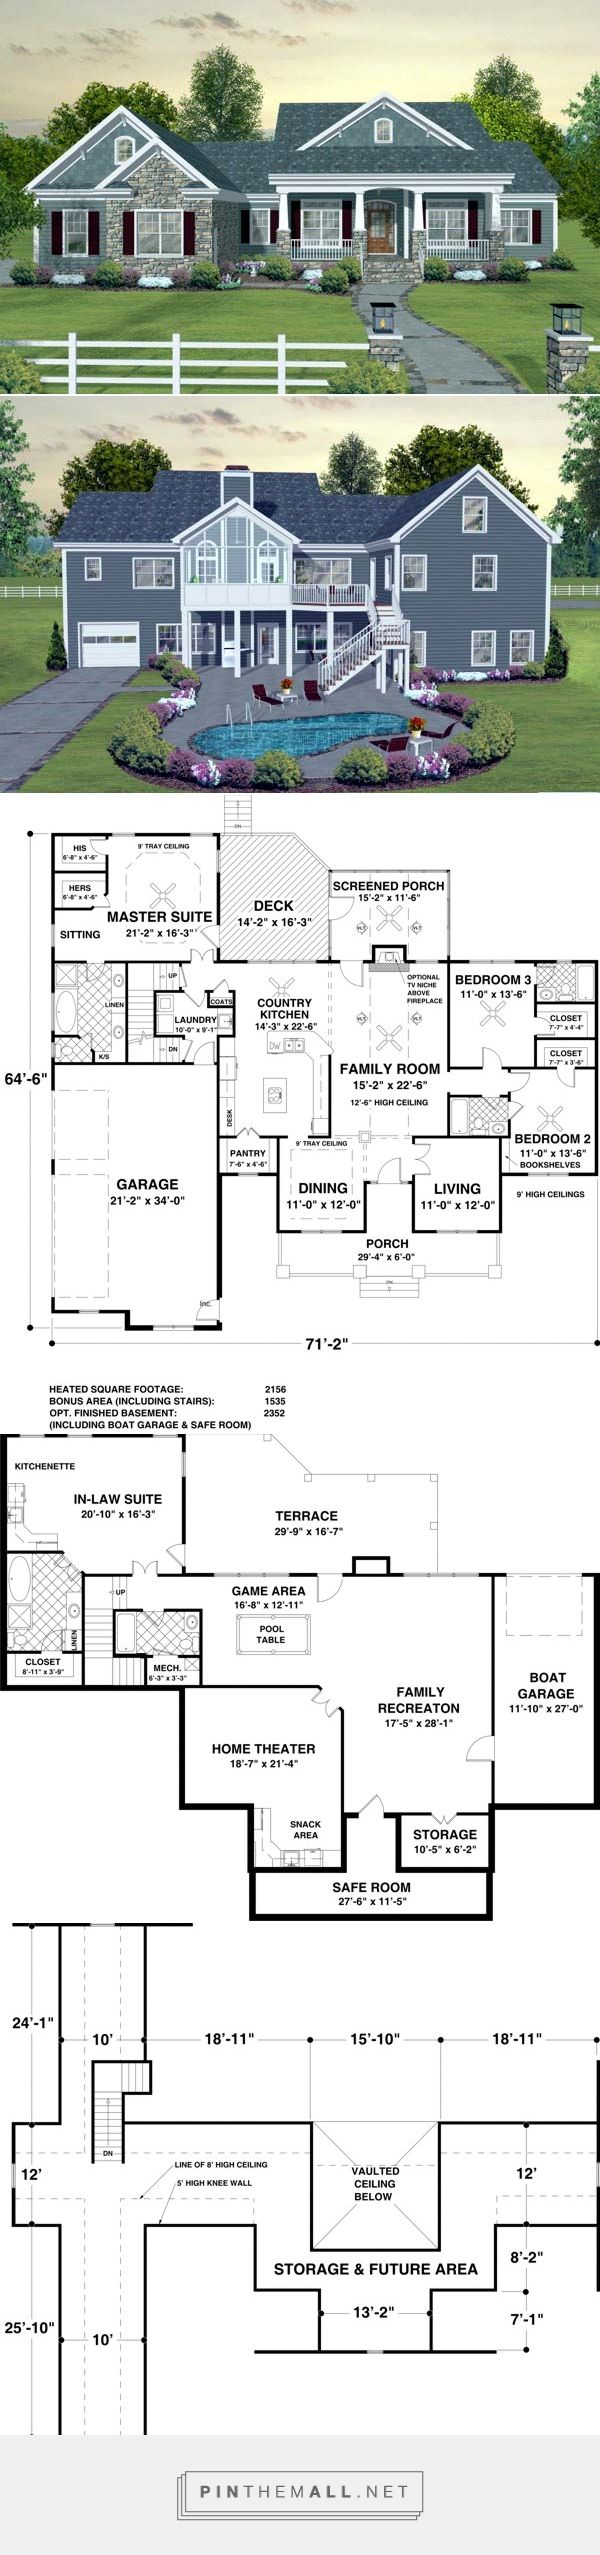 Blueprint Home Plans set of dining room chairs living room list